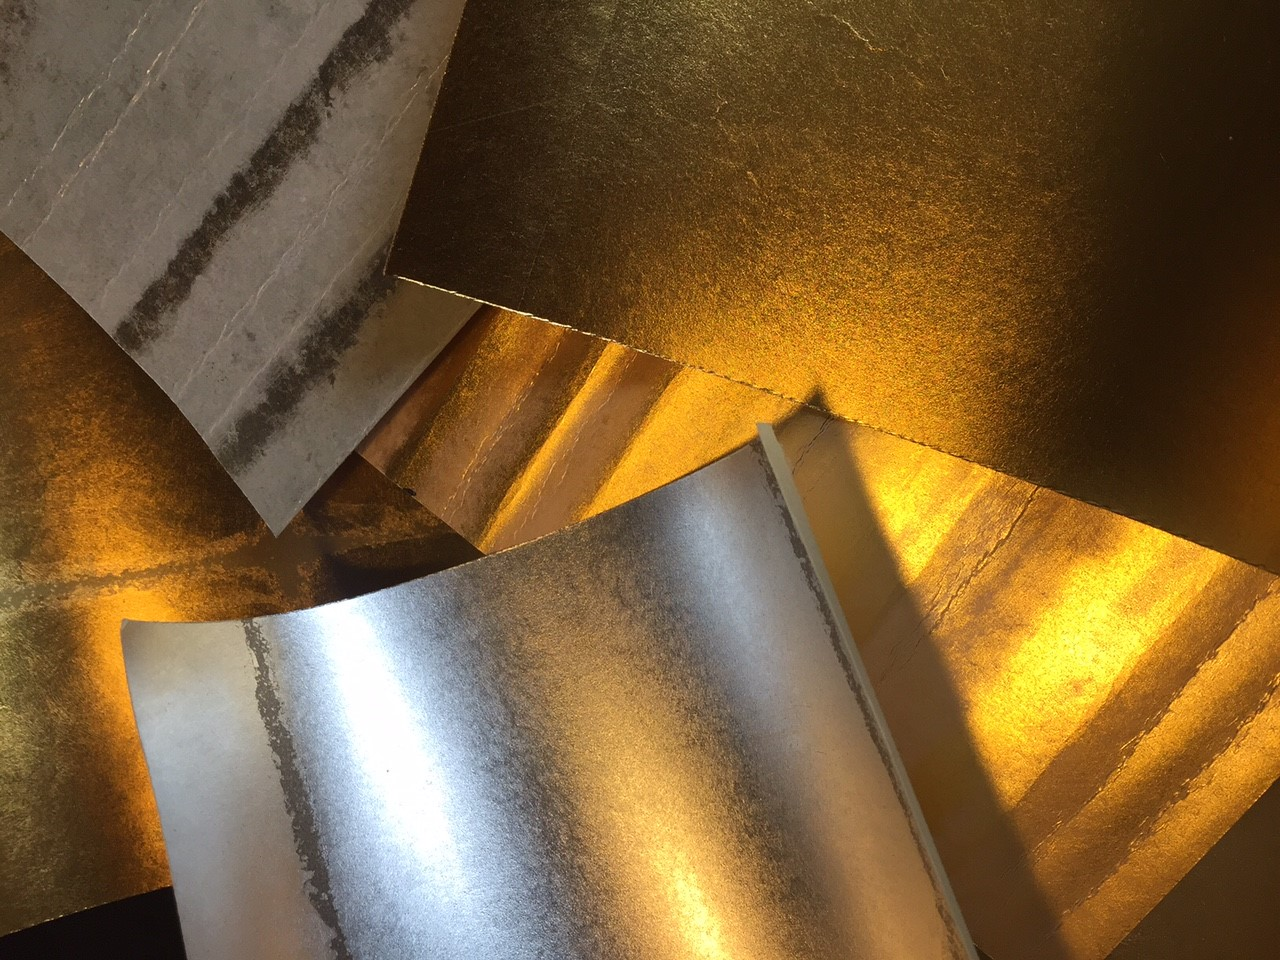 METAL LEAF - Precious metals foiled onto paper rolls ready to go.